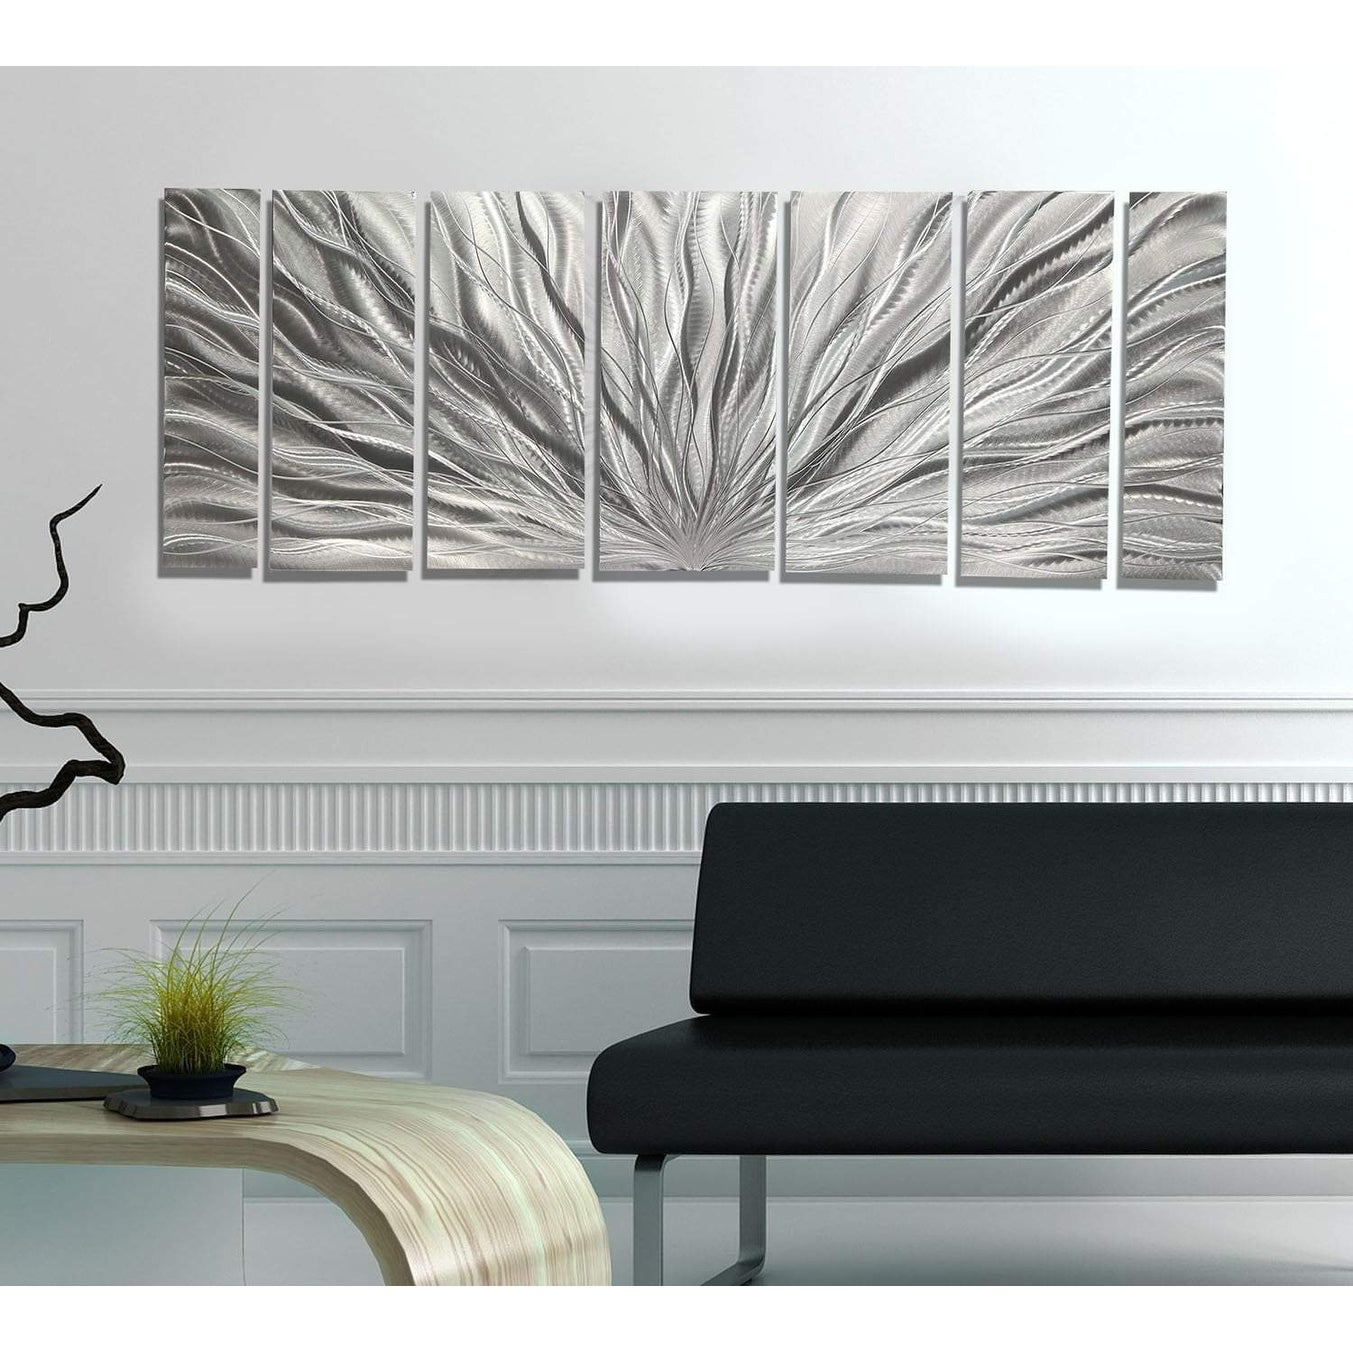 Statements2000 modern metal wall art panels abstract silver decor by jon allen silver plumage